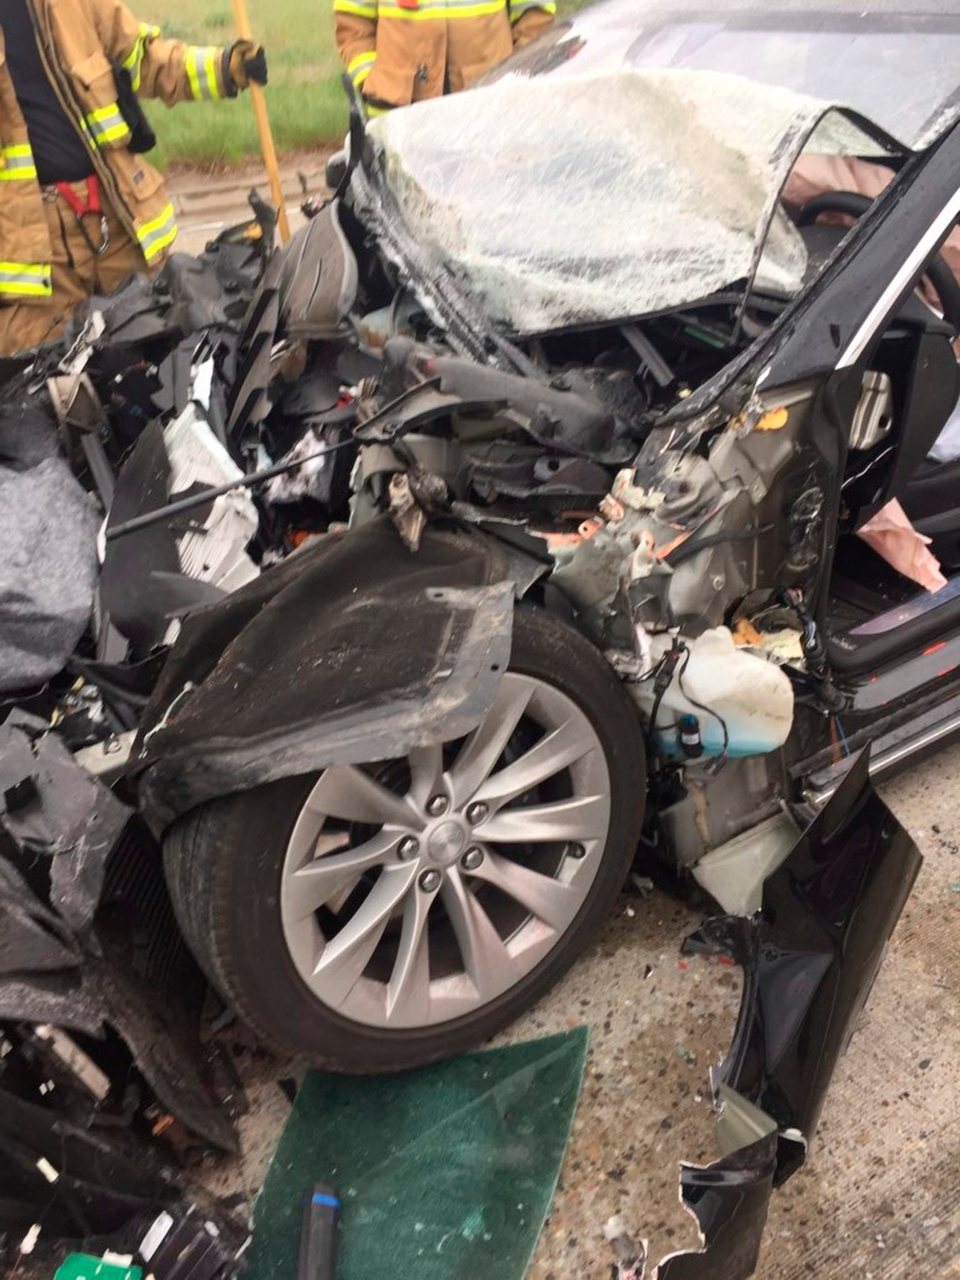 In this Friday, May 11, 2018, photo released by the South Jordan Police Department shows a traffic collision involving a Tesla Model S sedan with a Fire Department mechanic truck stopped at a red light in Utah. Witnesses indicated the Tesla Model S did not brake prior to impact. (South Jordan Police Department via AP)